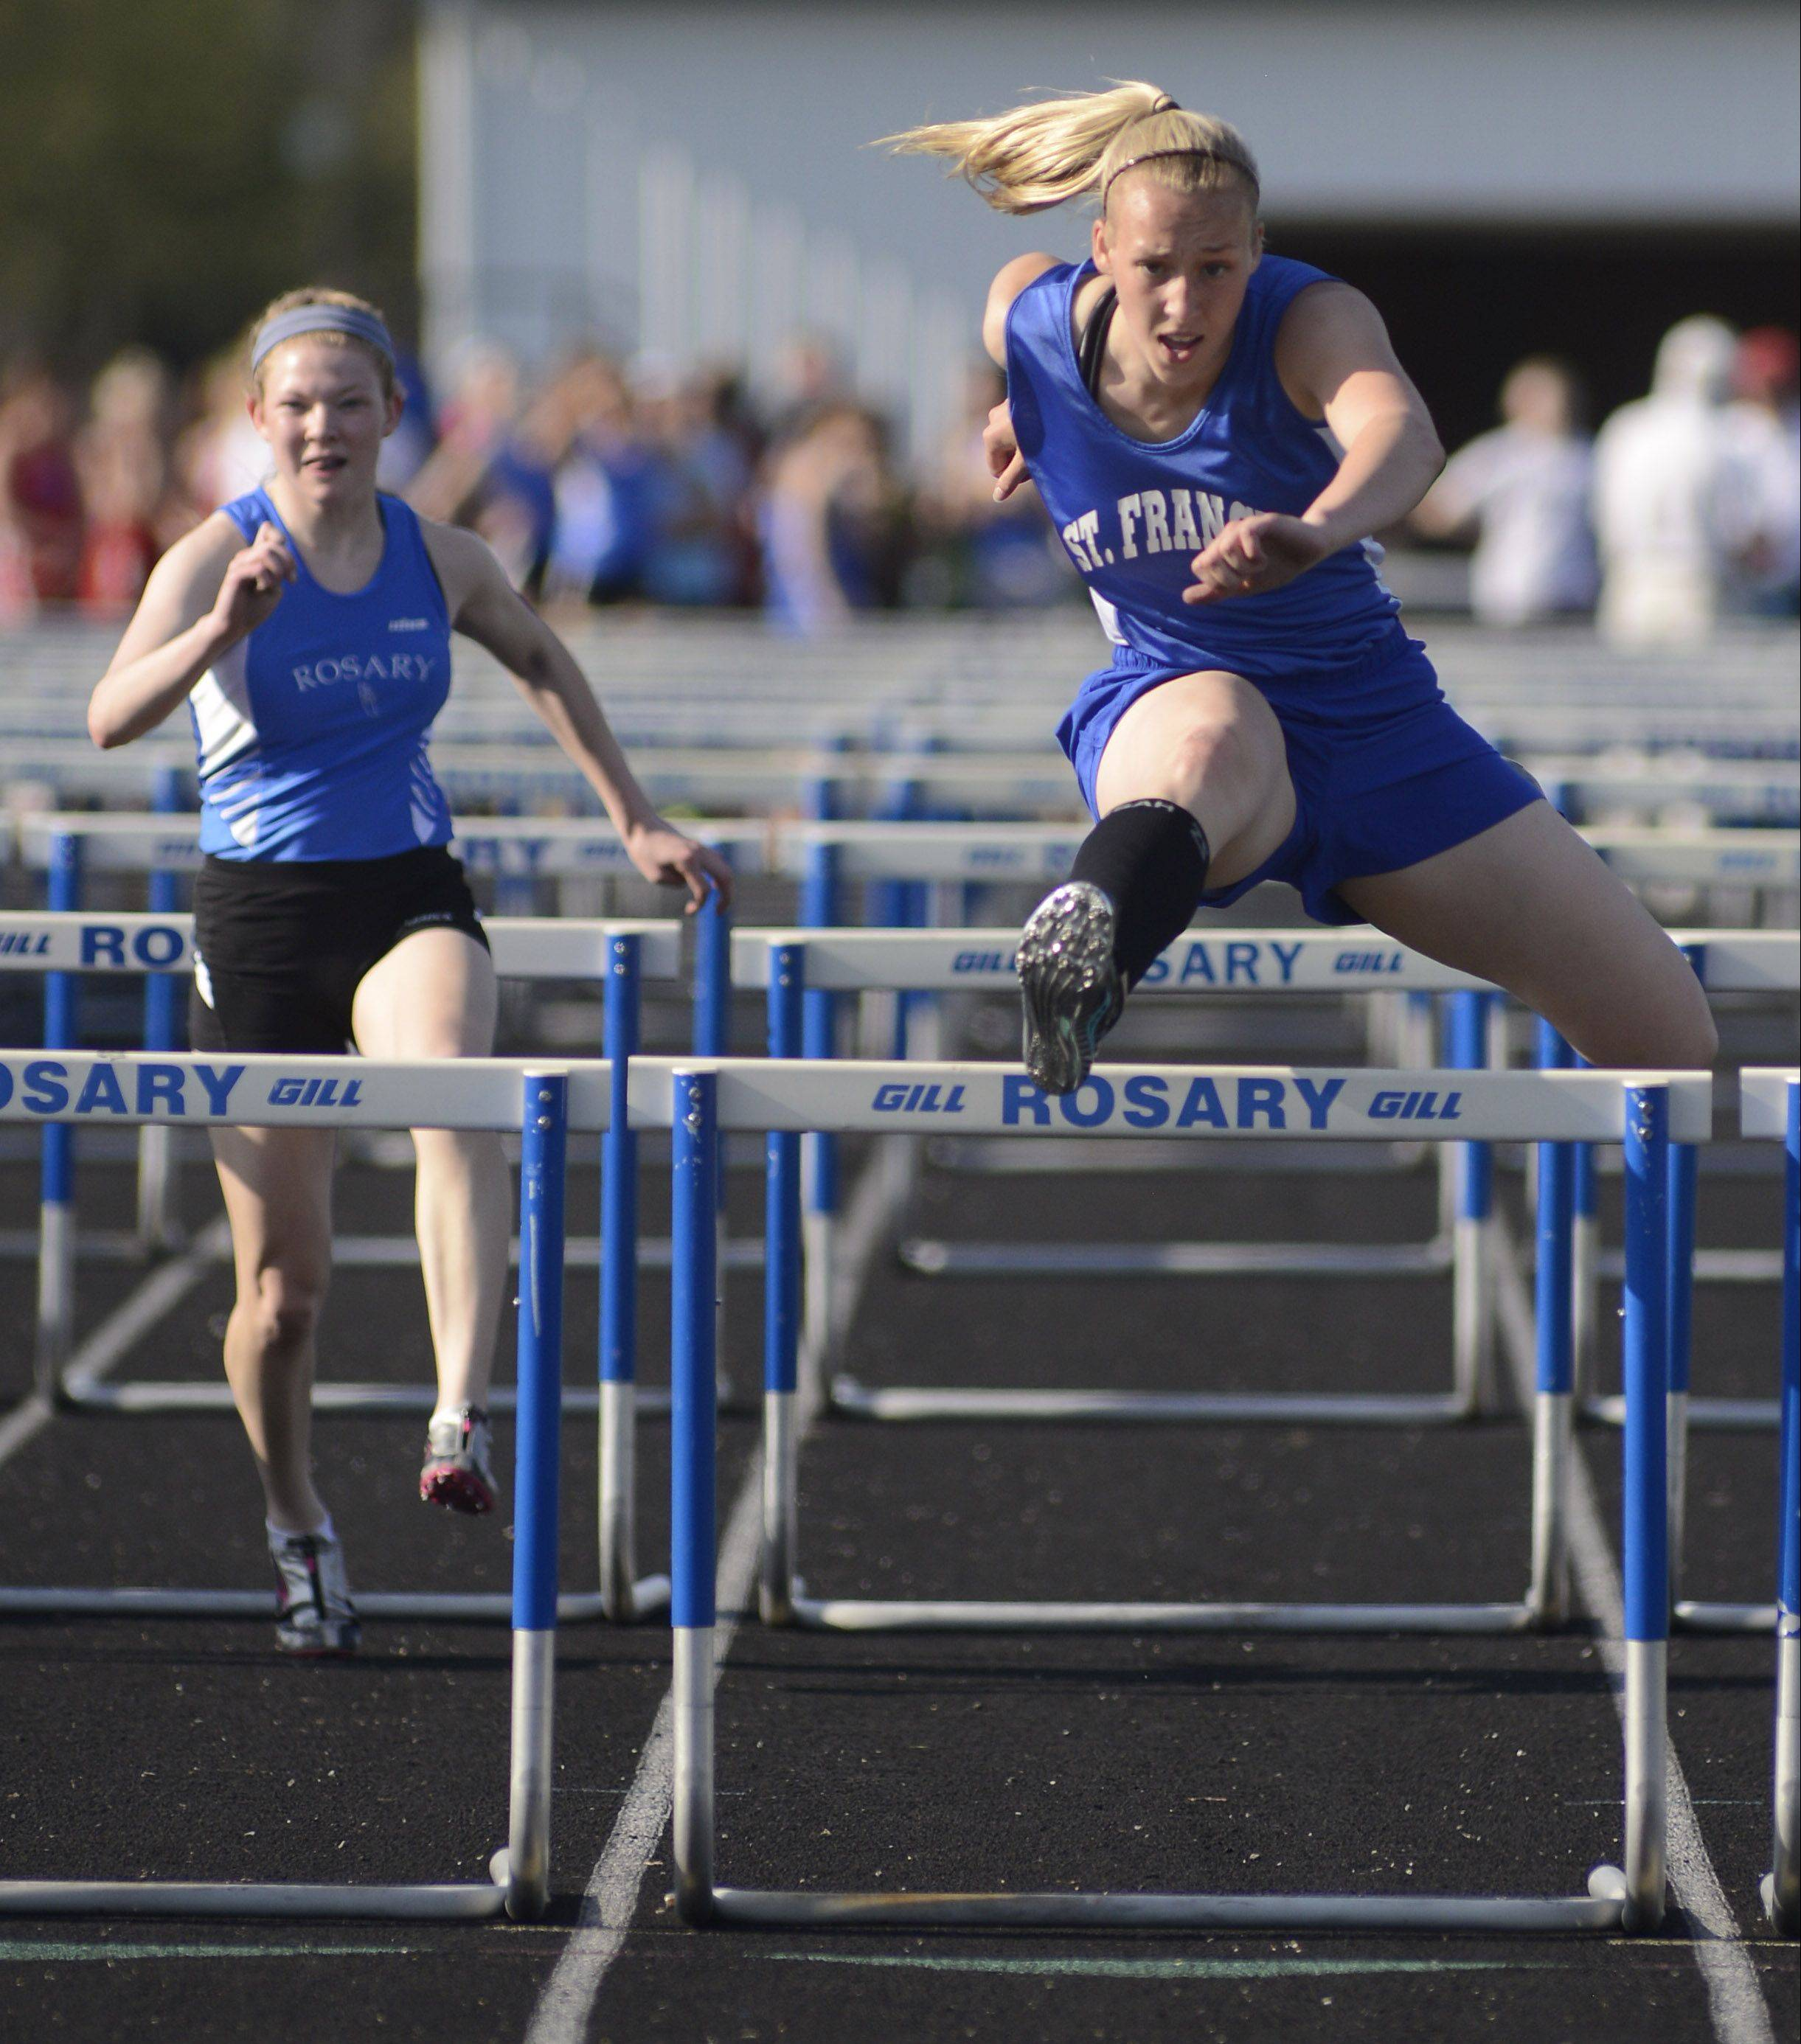 St. Francis' Amanda Nunley clears a hurdle Wednesday in Aurora.